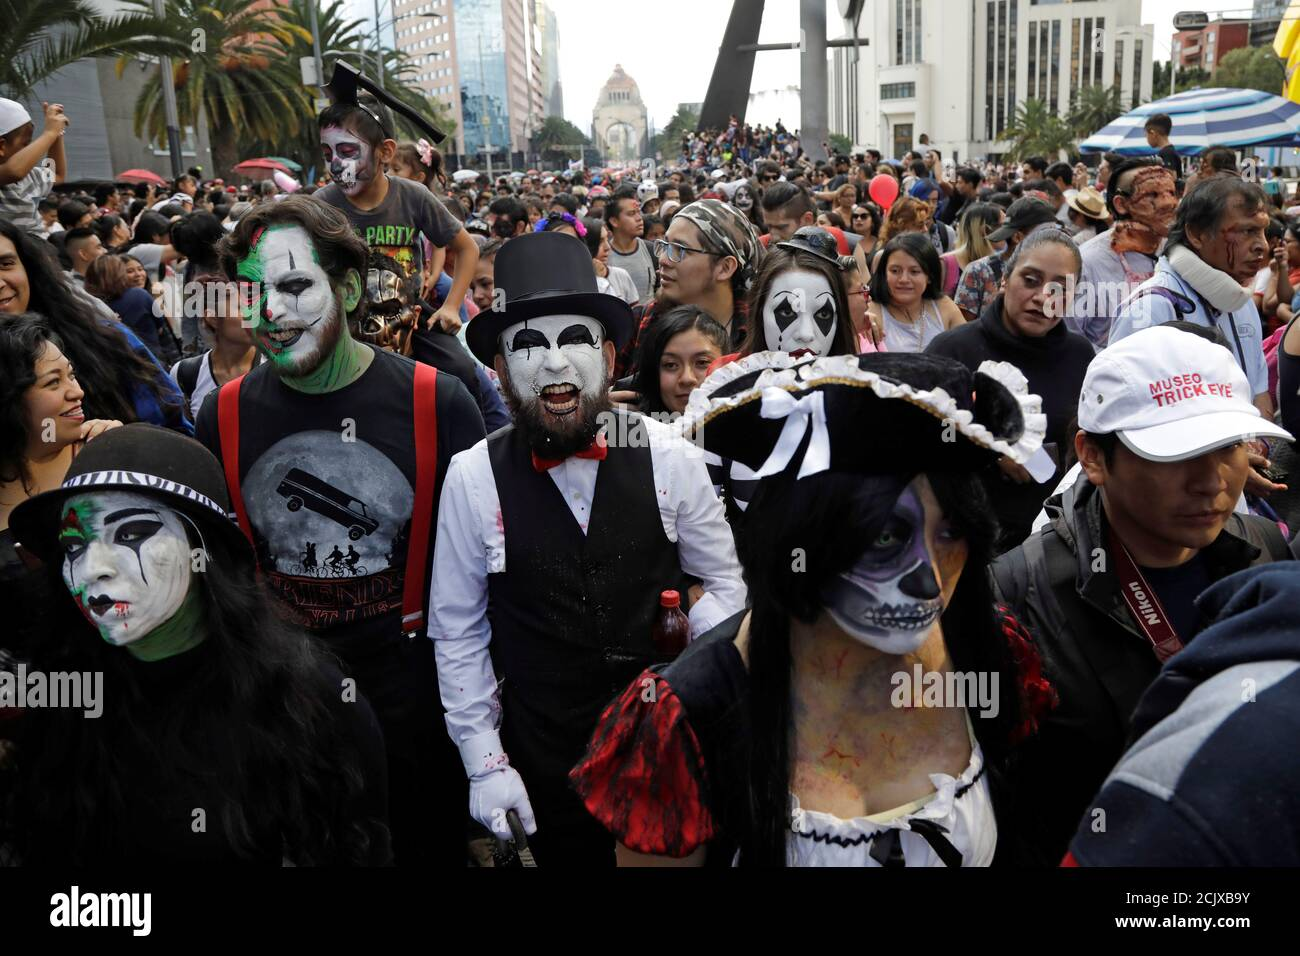 People take part in the annual Zombie Walk in Mexico City, Mexico October 19, 2019. REUTERS/Luis Cortes Stock Photo